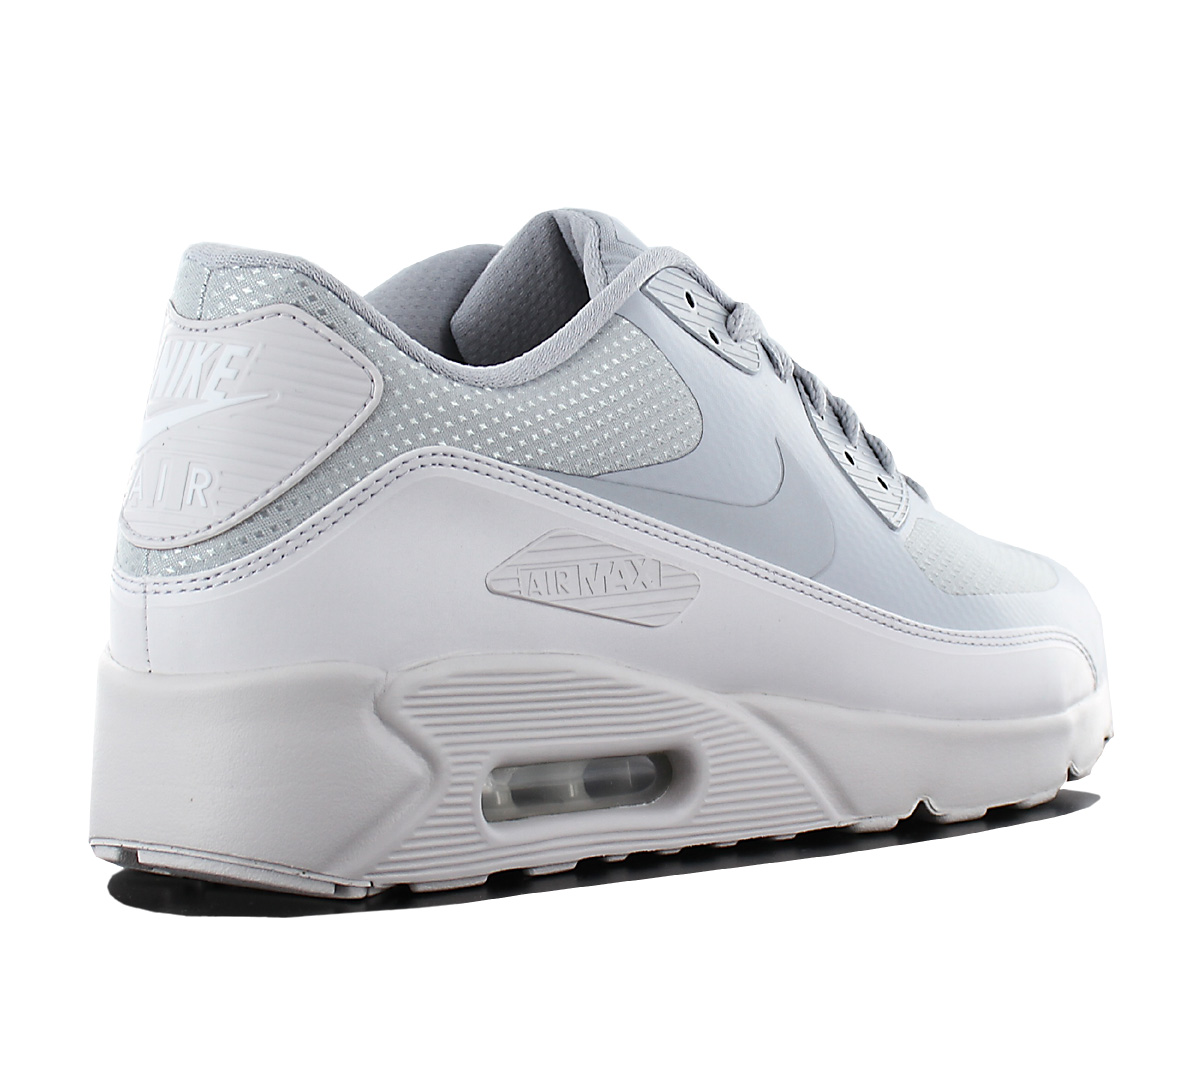 Details about Nike Air Max 90 Ultra 2.0 Essential Men's Sneakers Shoes Grey 875695 017 New